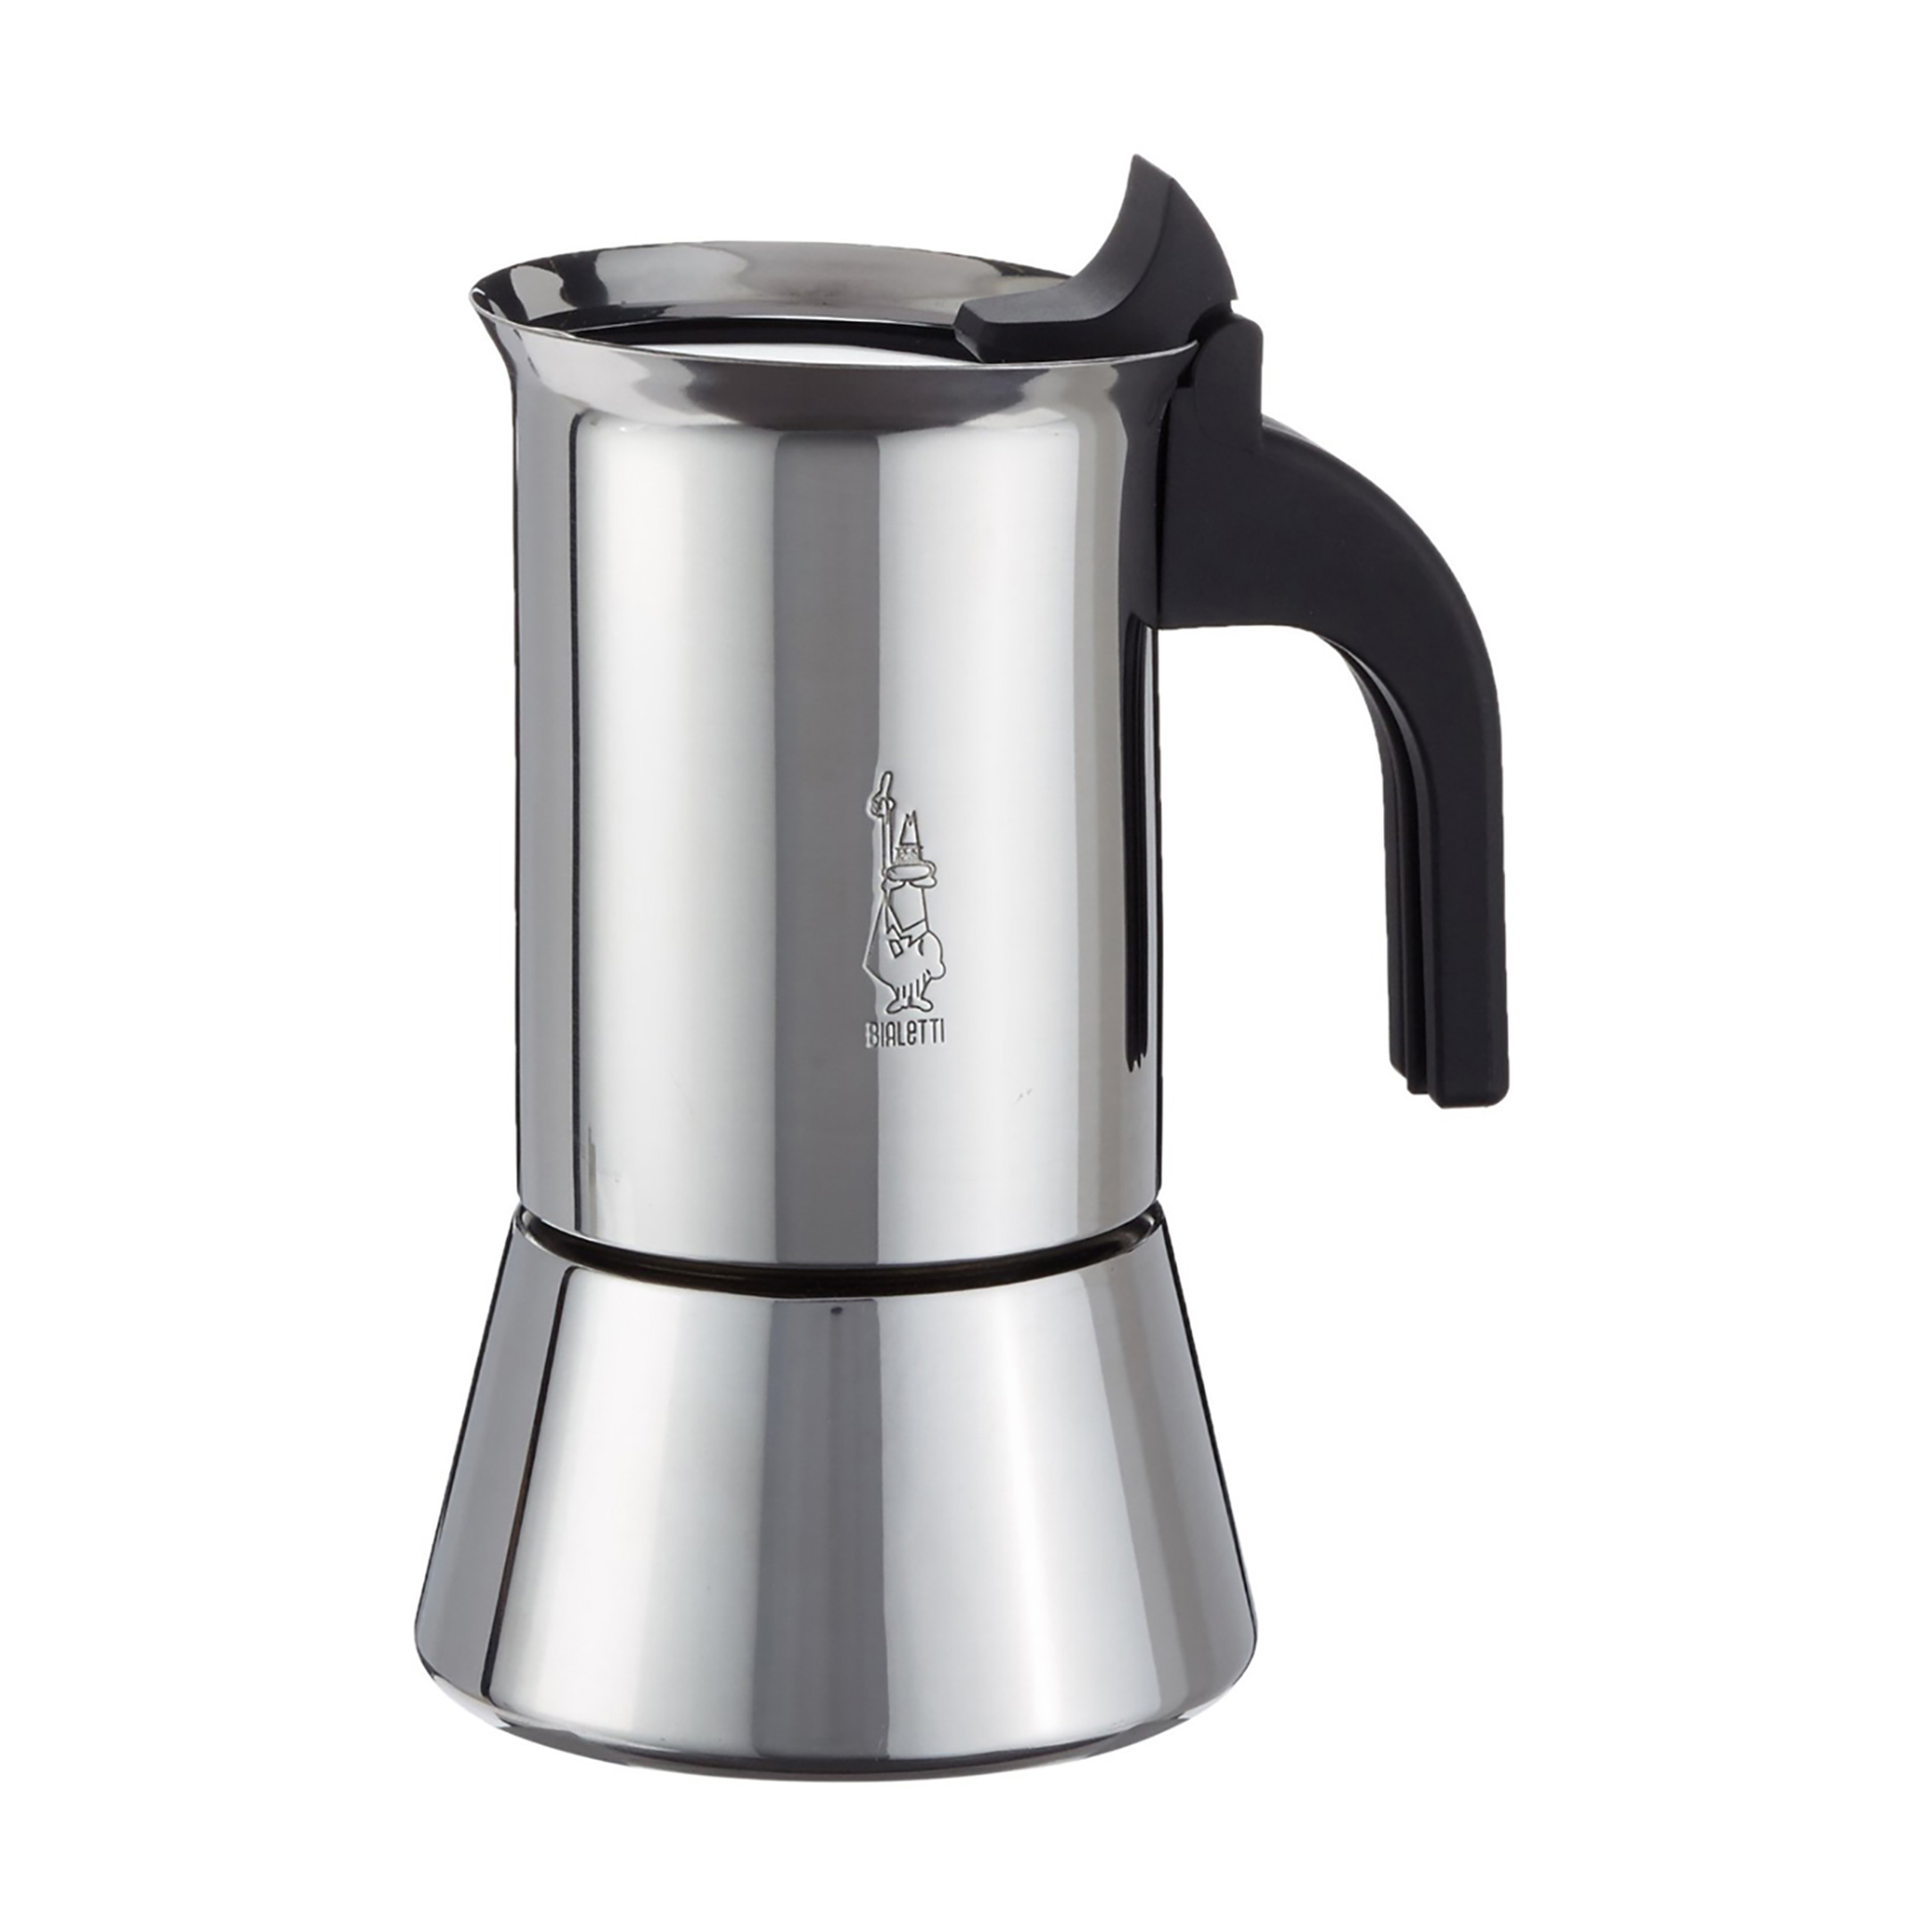 Image of   Bialetti Venus - 10 kopper